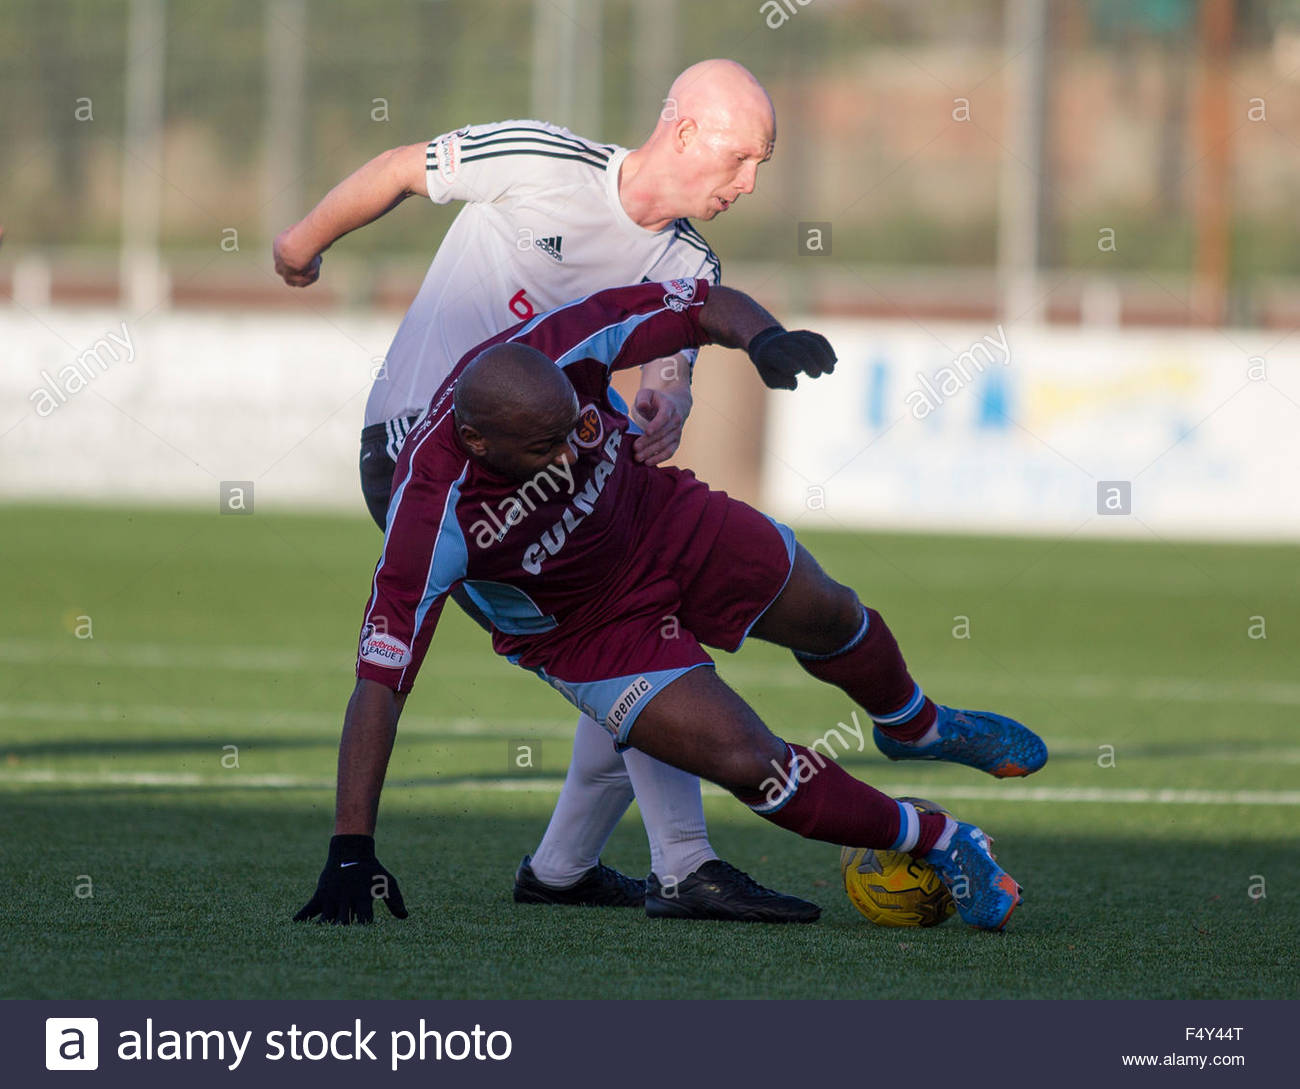 Gerry McLaughlan of Ayr (L) and Jason Scotland of Stenhousemuir (R) battle for the ball during the Ladbrokes Scottish - Stock Image